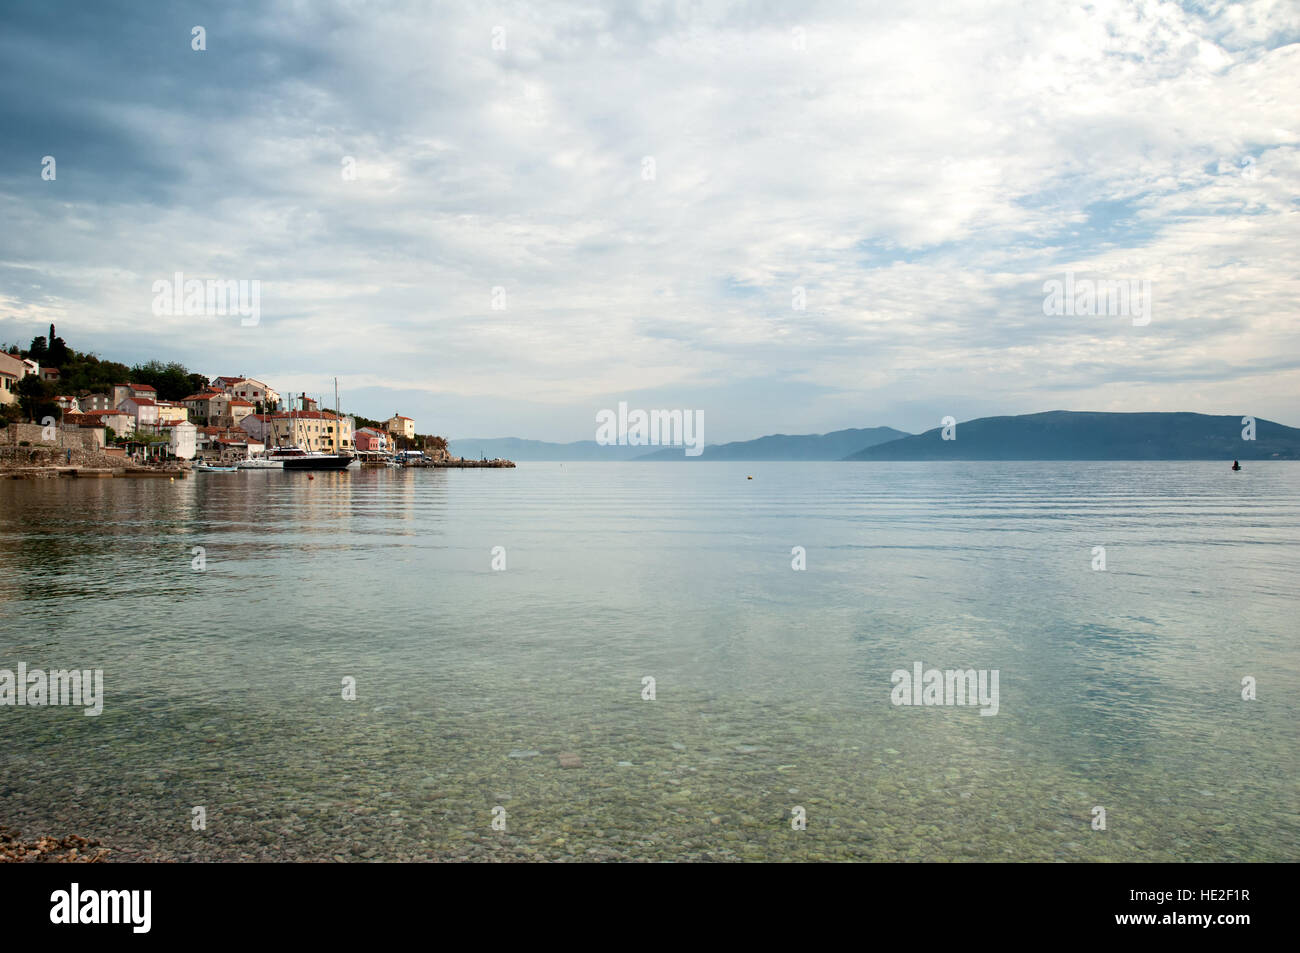 Valun Village Port on the Island of Cres in Croatia Stock Photo